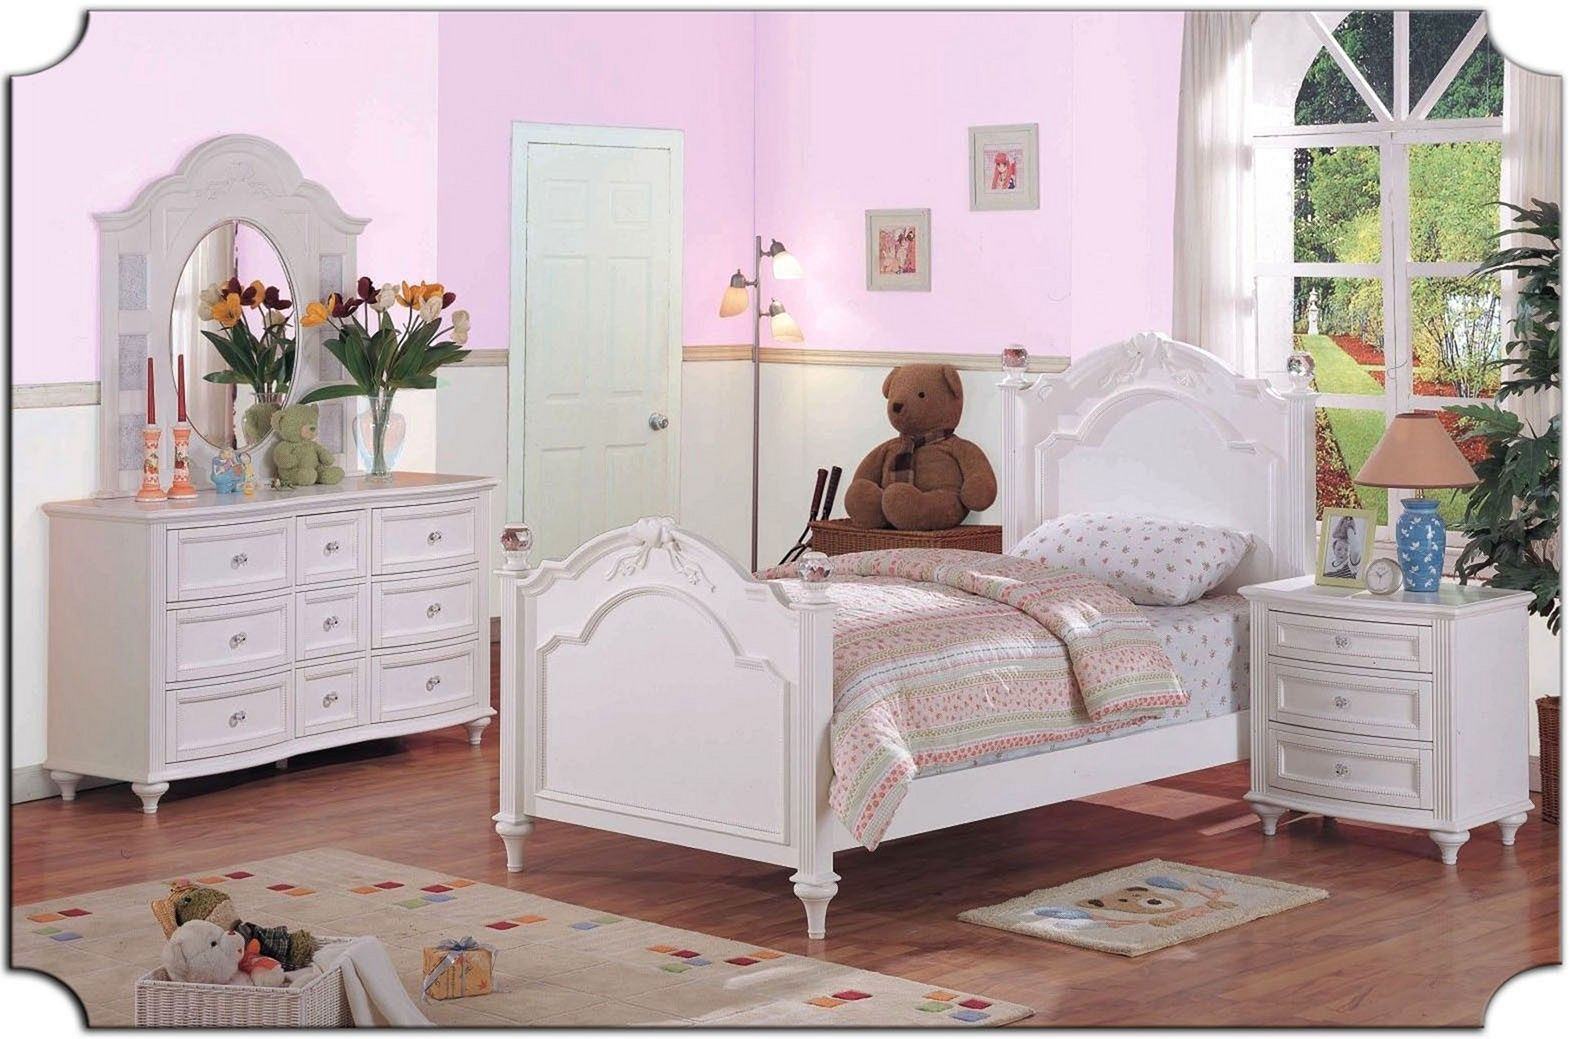 25 Cozy Kids Bedroom Furniture Sets Ideas That Make Their ...